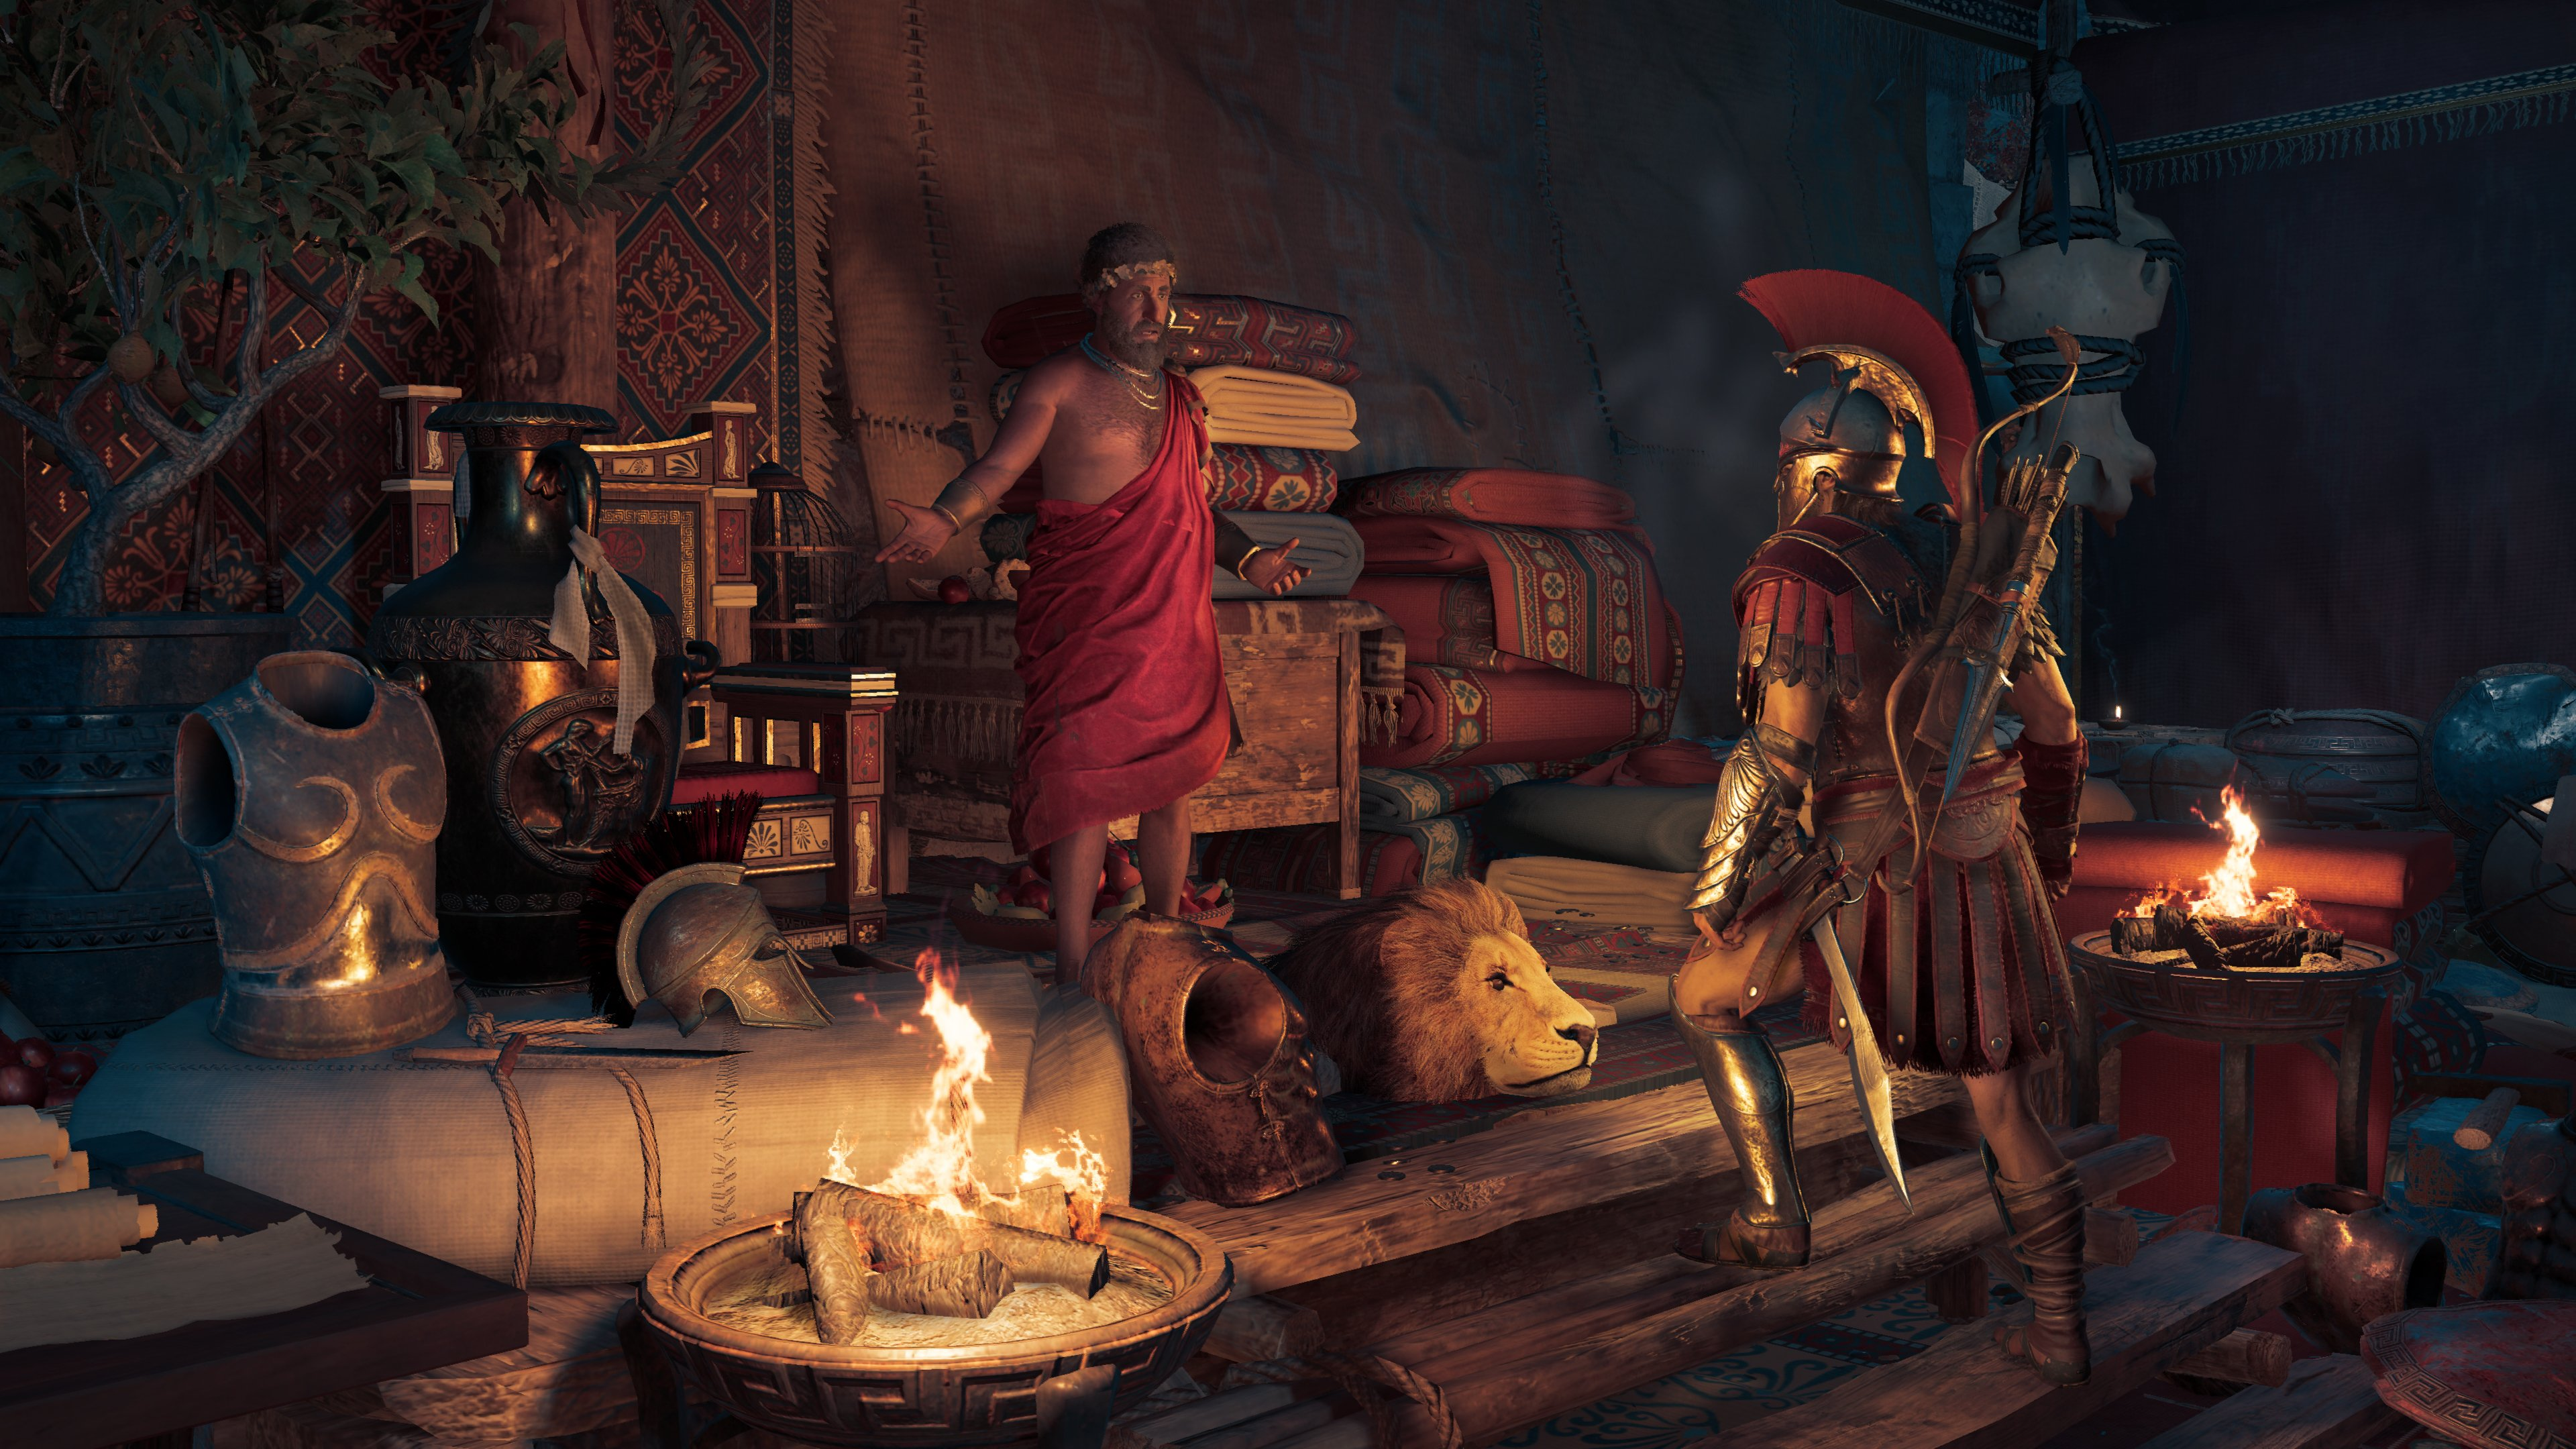 Test out Google's new streaming platform and nab a copy of Assassin's Creed Odyssey screenshot